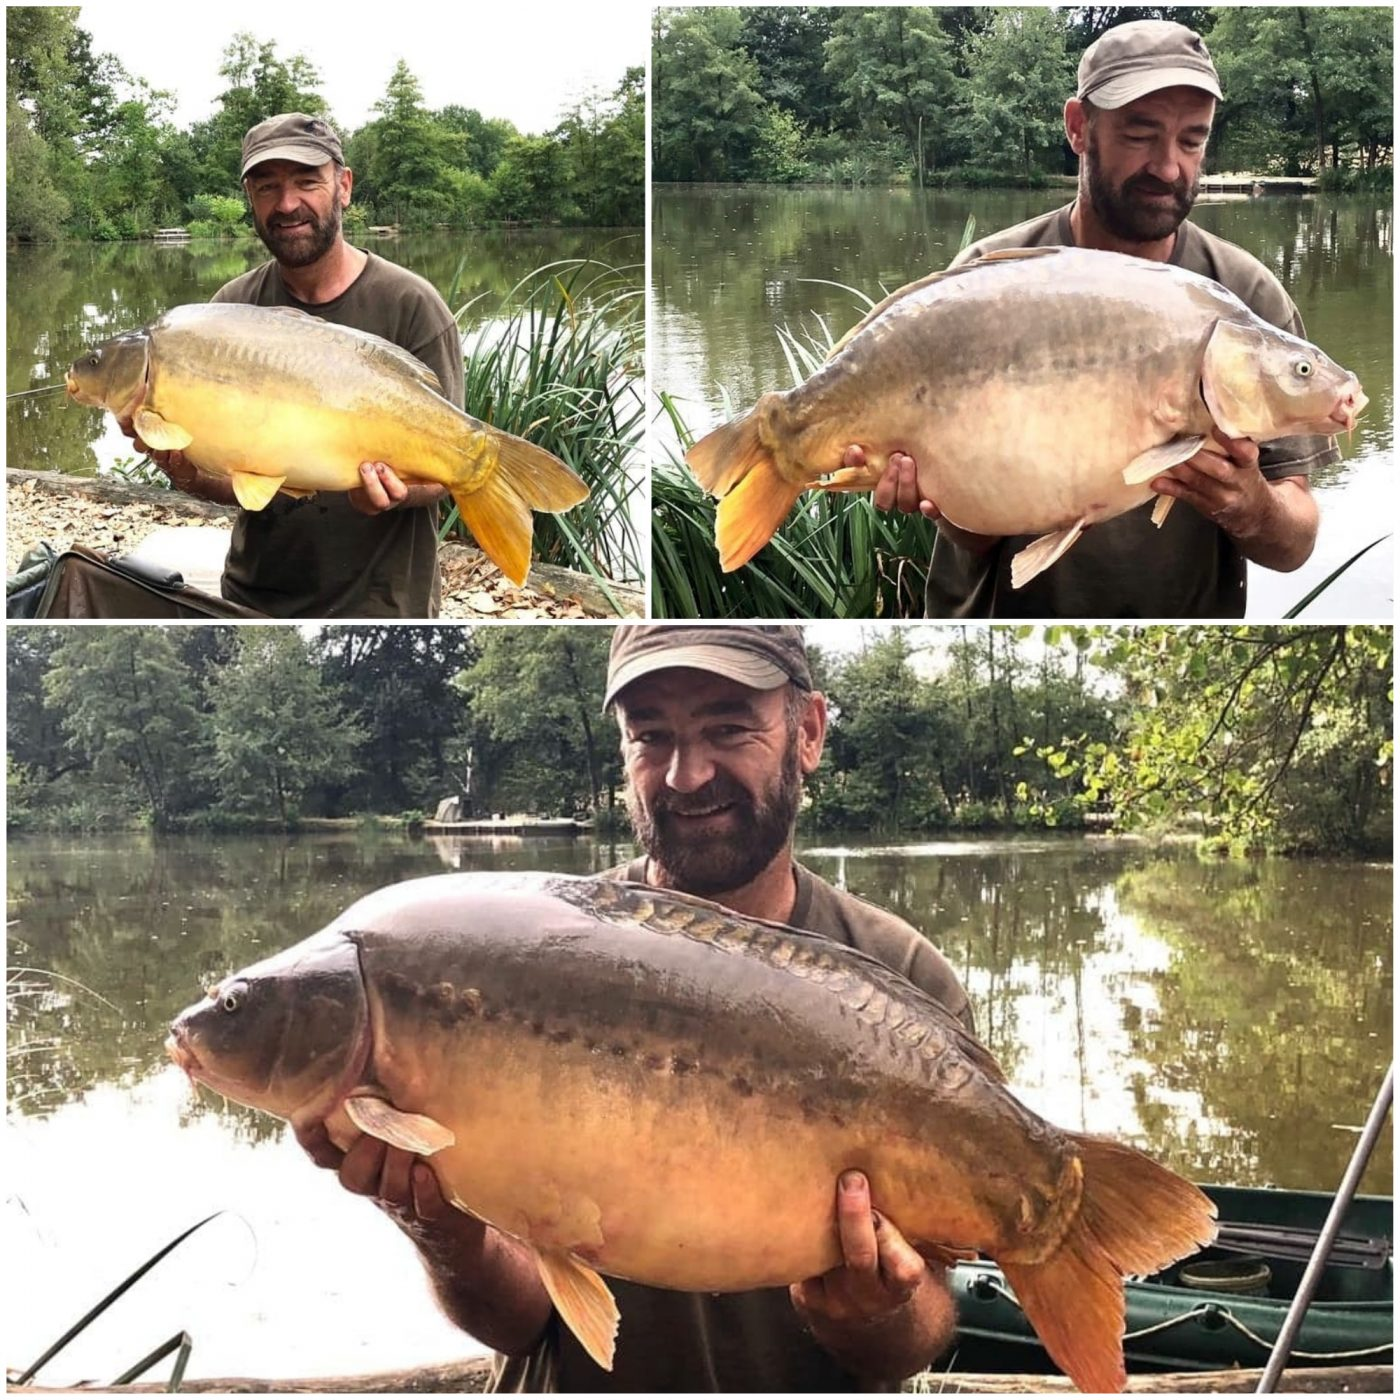 Chris with multiple carp in france on his fishing holiday